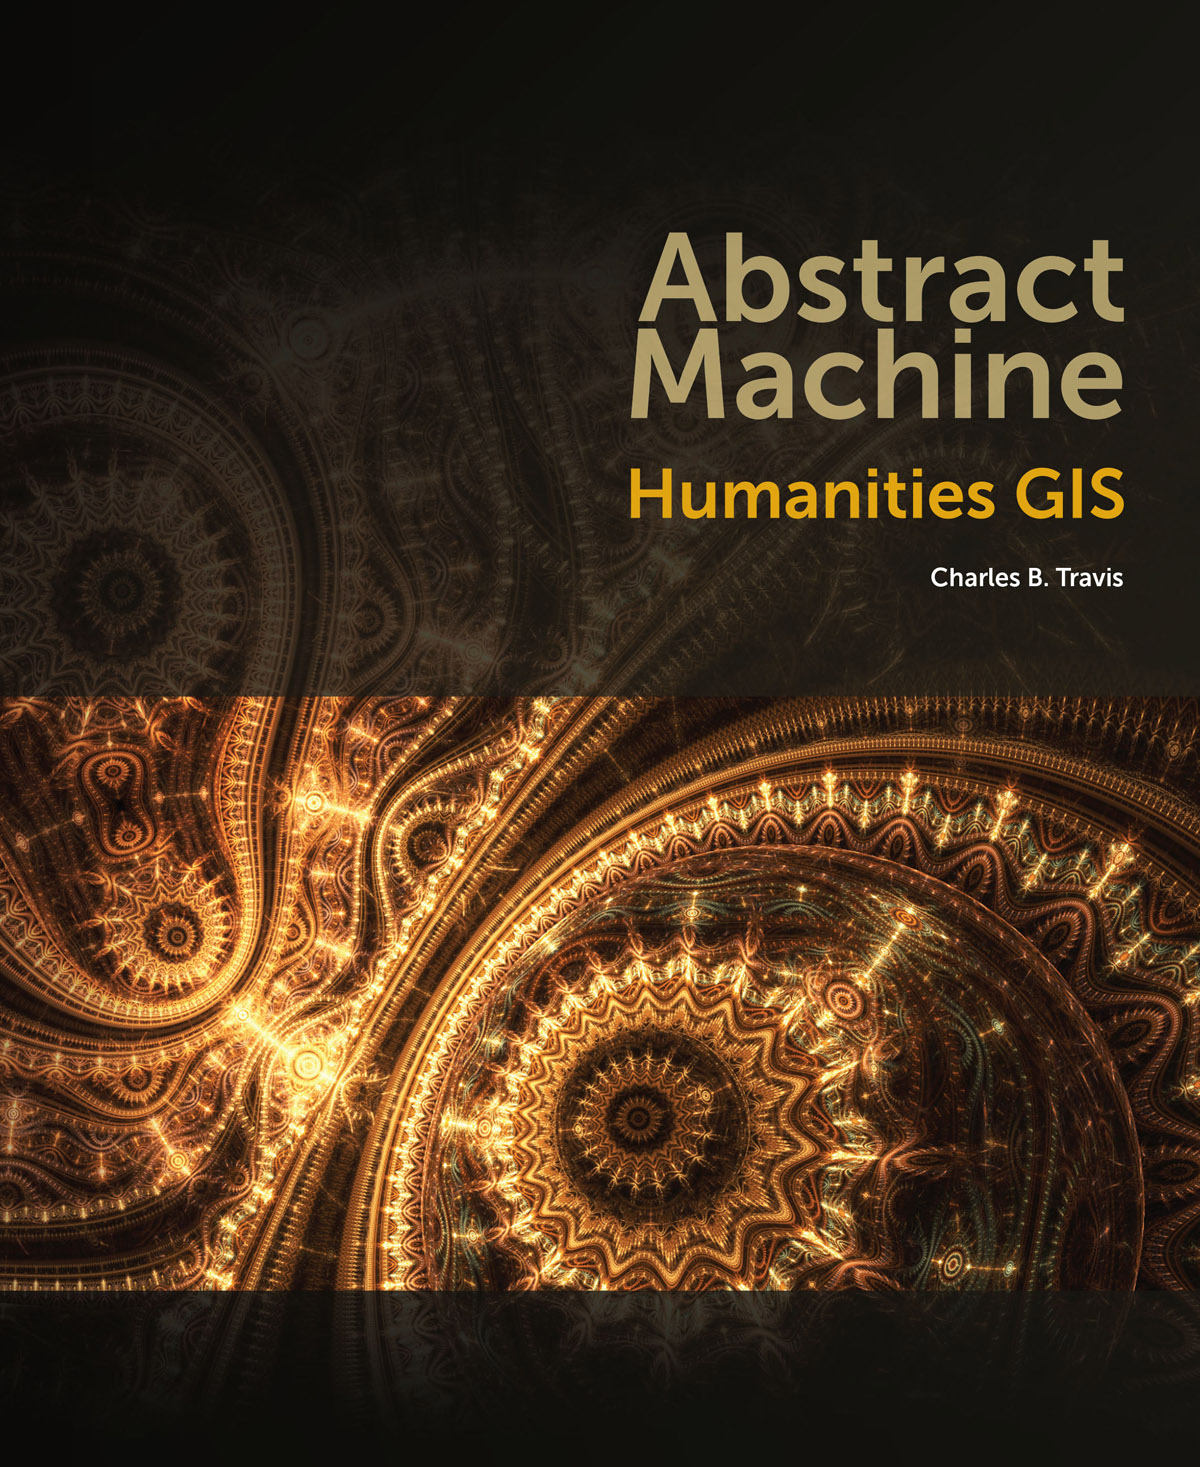 "<em>Abstract Machine</em> demonstrates the importance of analyzing data in digital formats to study the humanities."" title=""<em>Abstract Machine</em> demonstrates the importance of analyzing data in digital formats to study the humanities.""><img src="